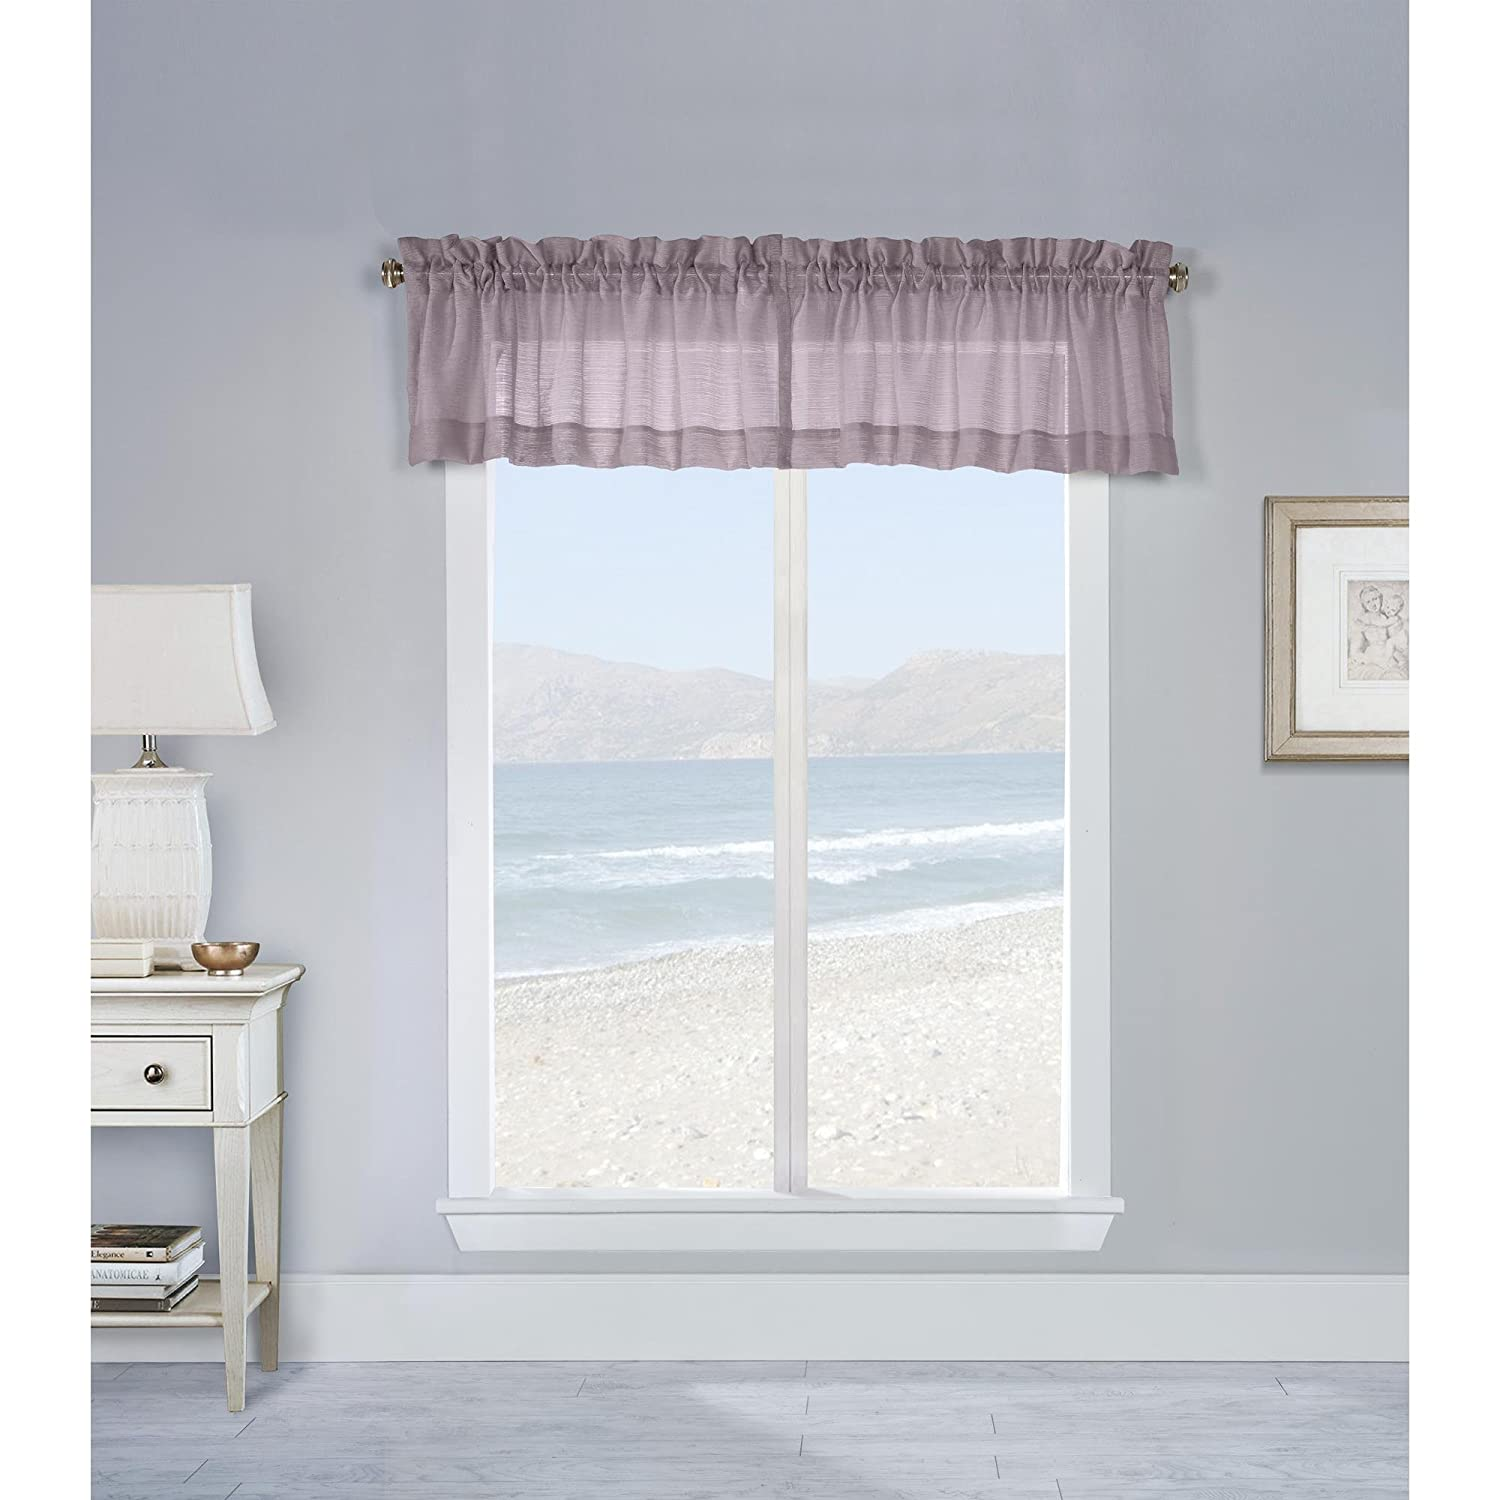 Commonwealth Mist Stripe 16 Pole Top Valance in Dusty Rose